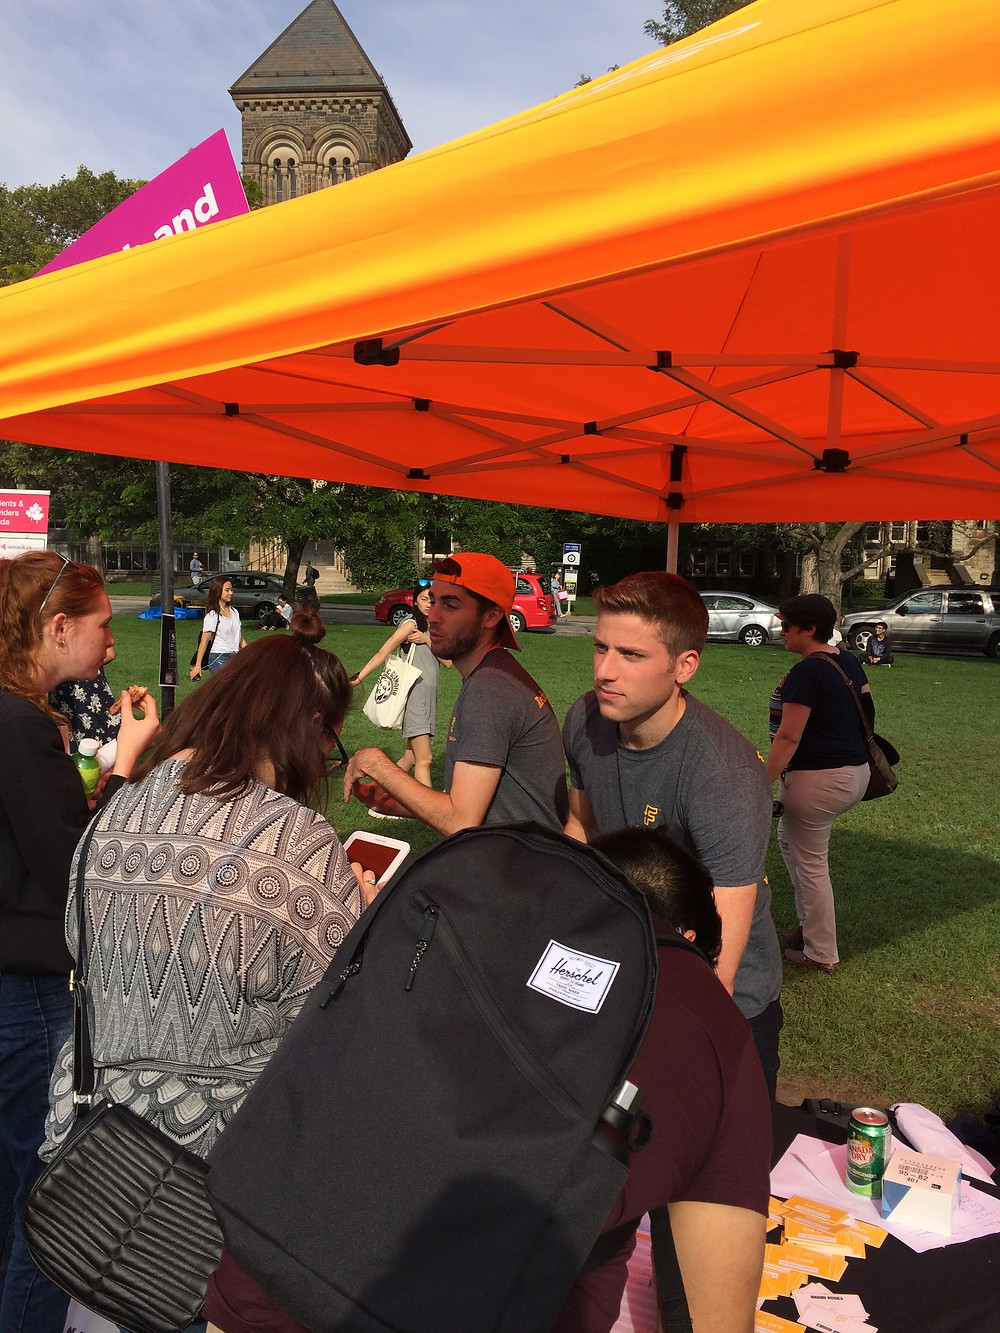 Feedback's co-founder Ben Walters, and CPO Casey Lewis at University of Toronto's Frosh Week Event